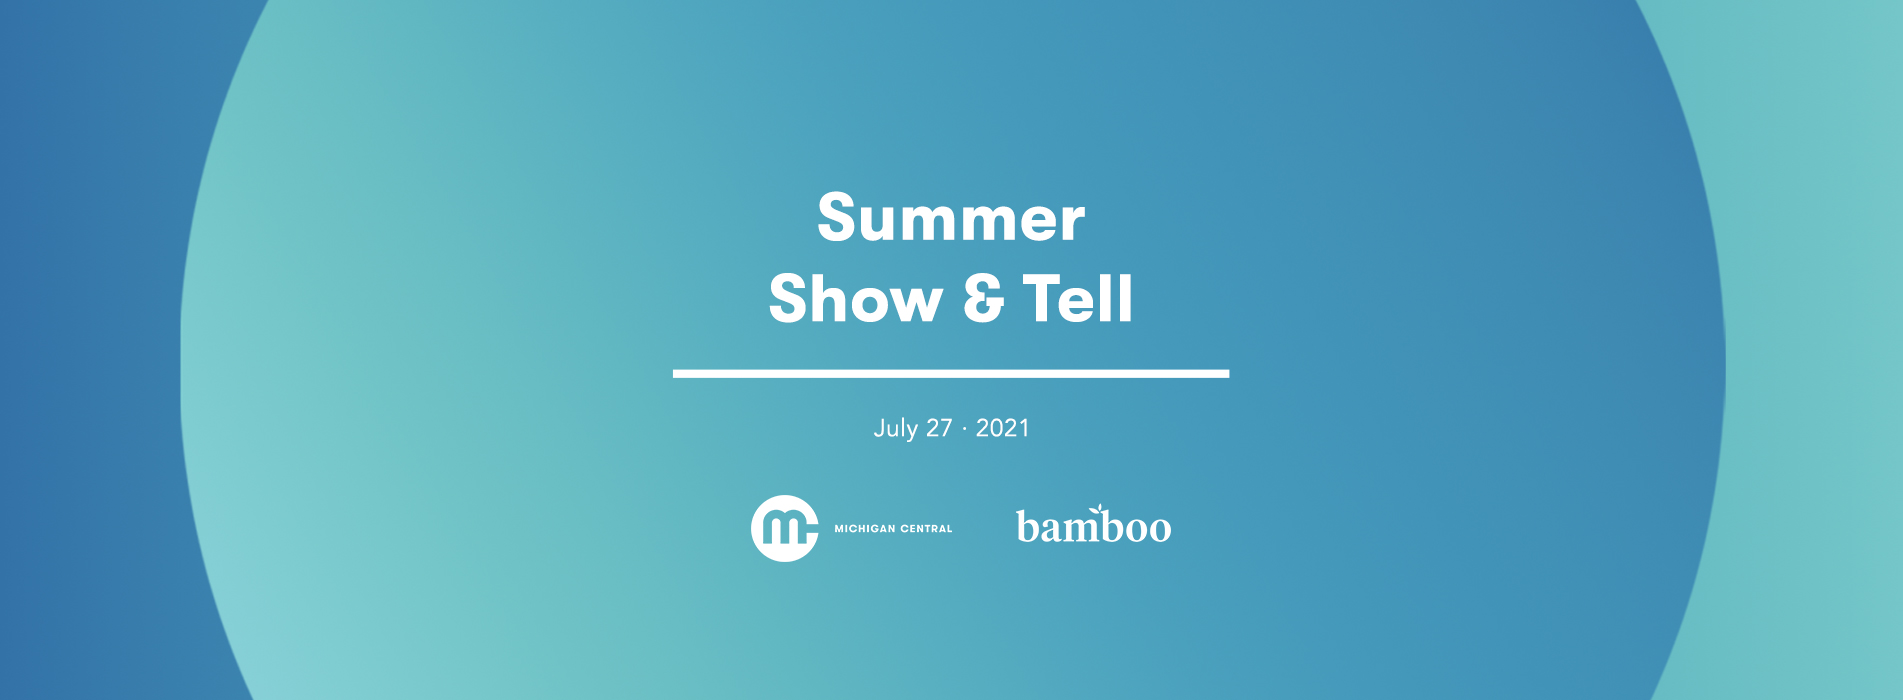 summer show and tell